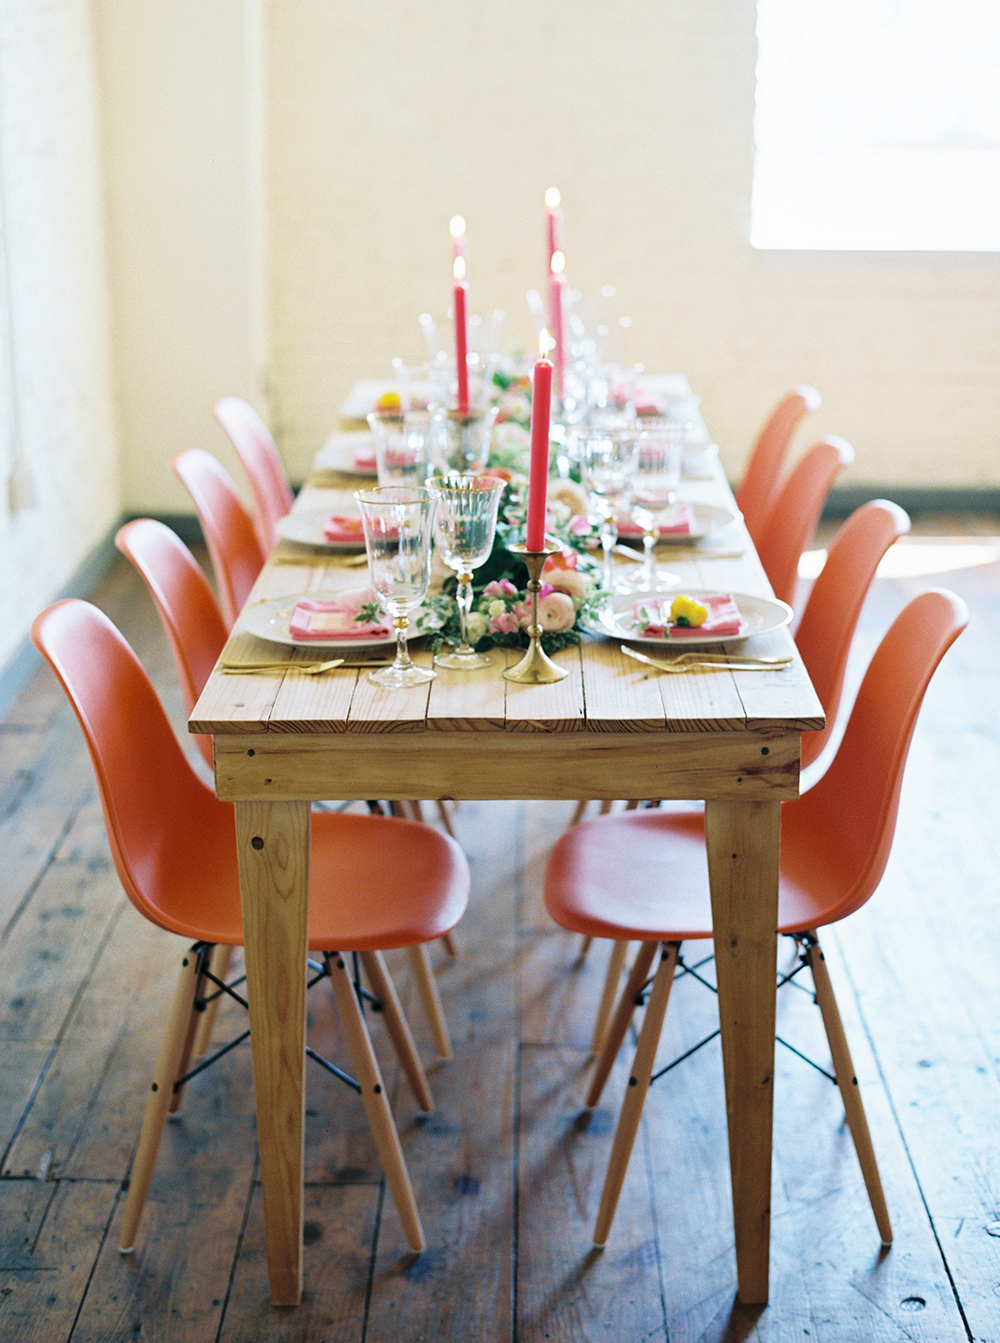 wedding receptions - photo by Jessica Gold Photography http://ruffledblog.com/vibrant-summer-wedding-inspiration-with-fun-colors